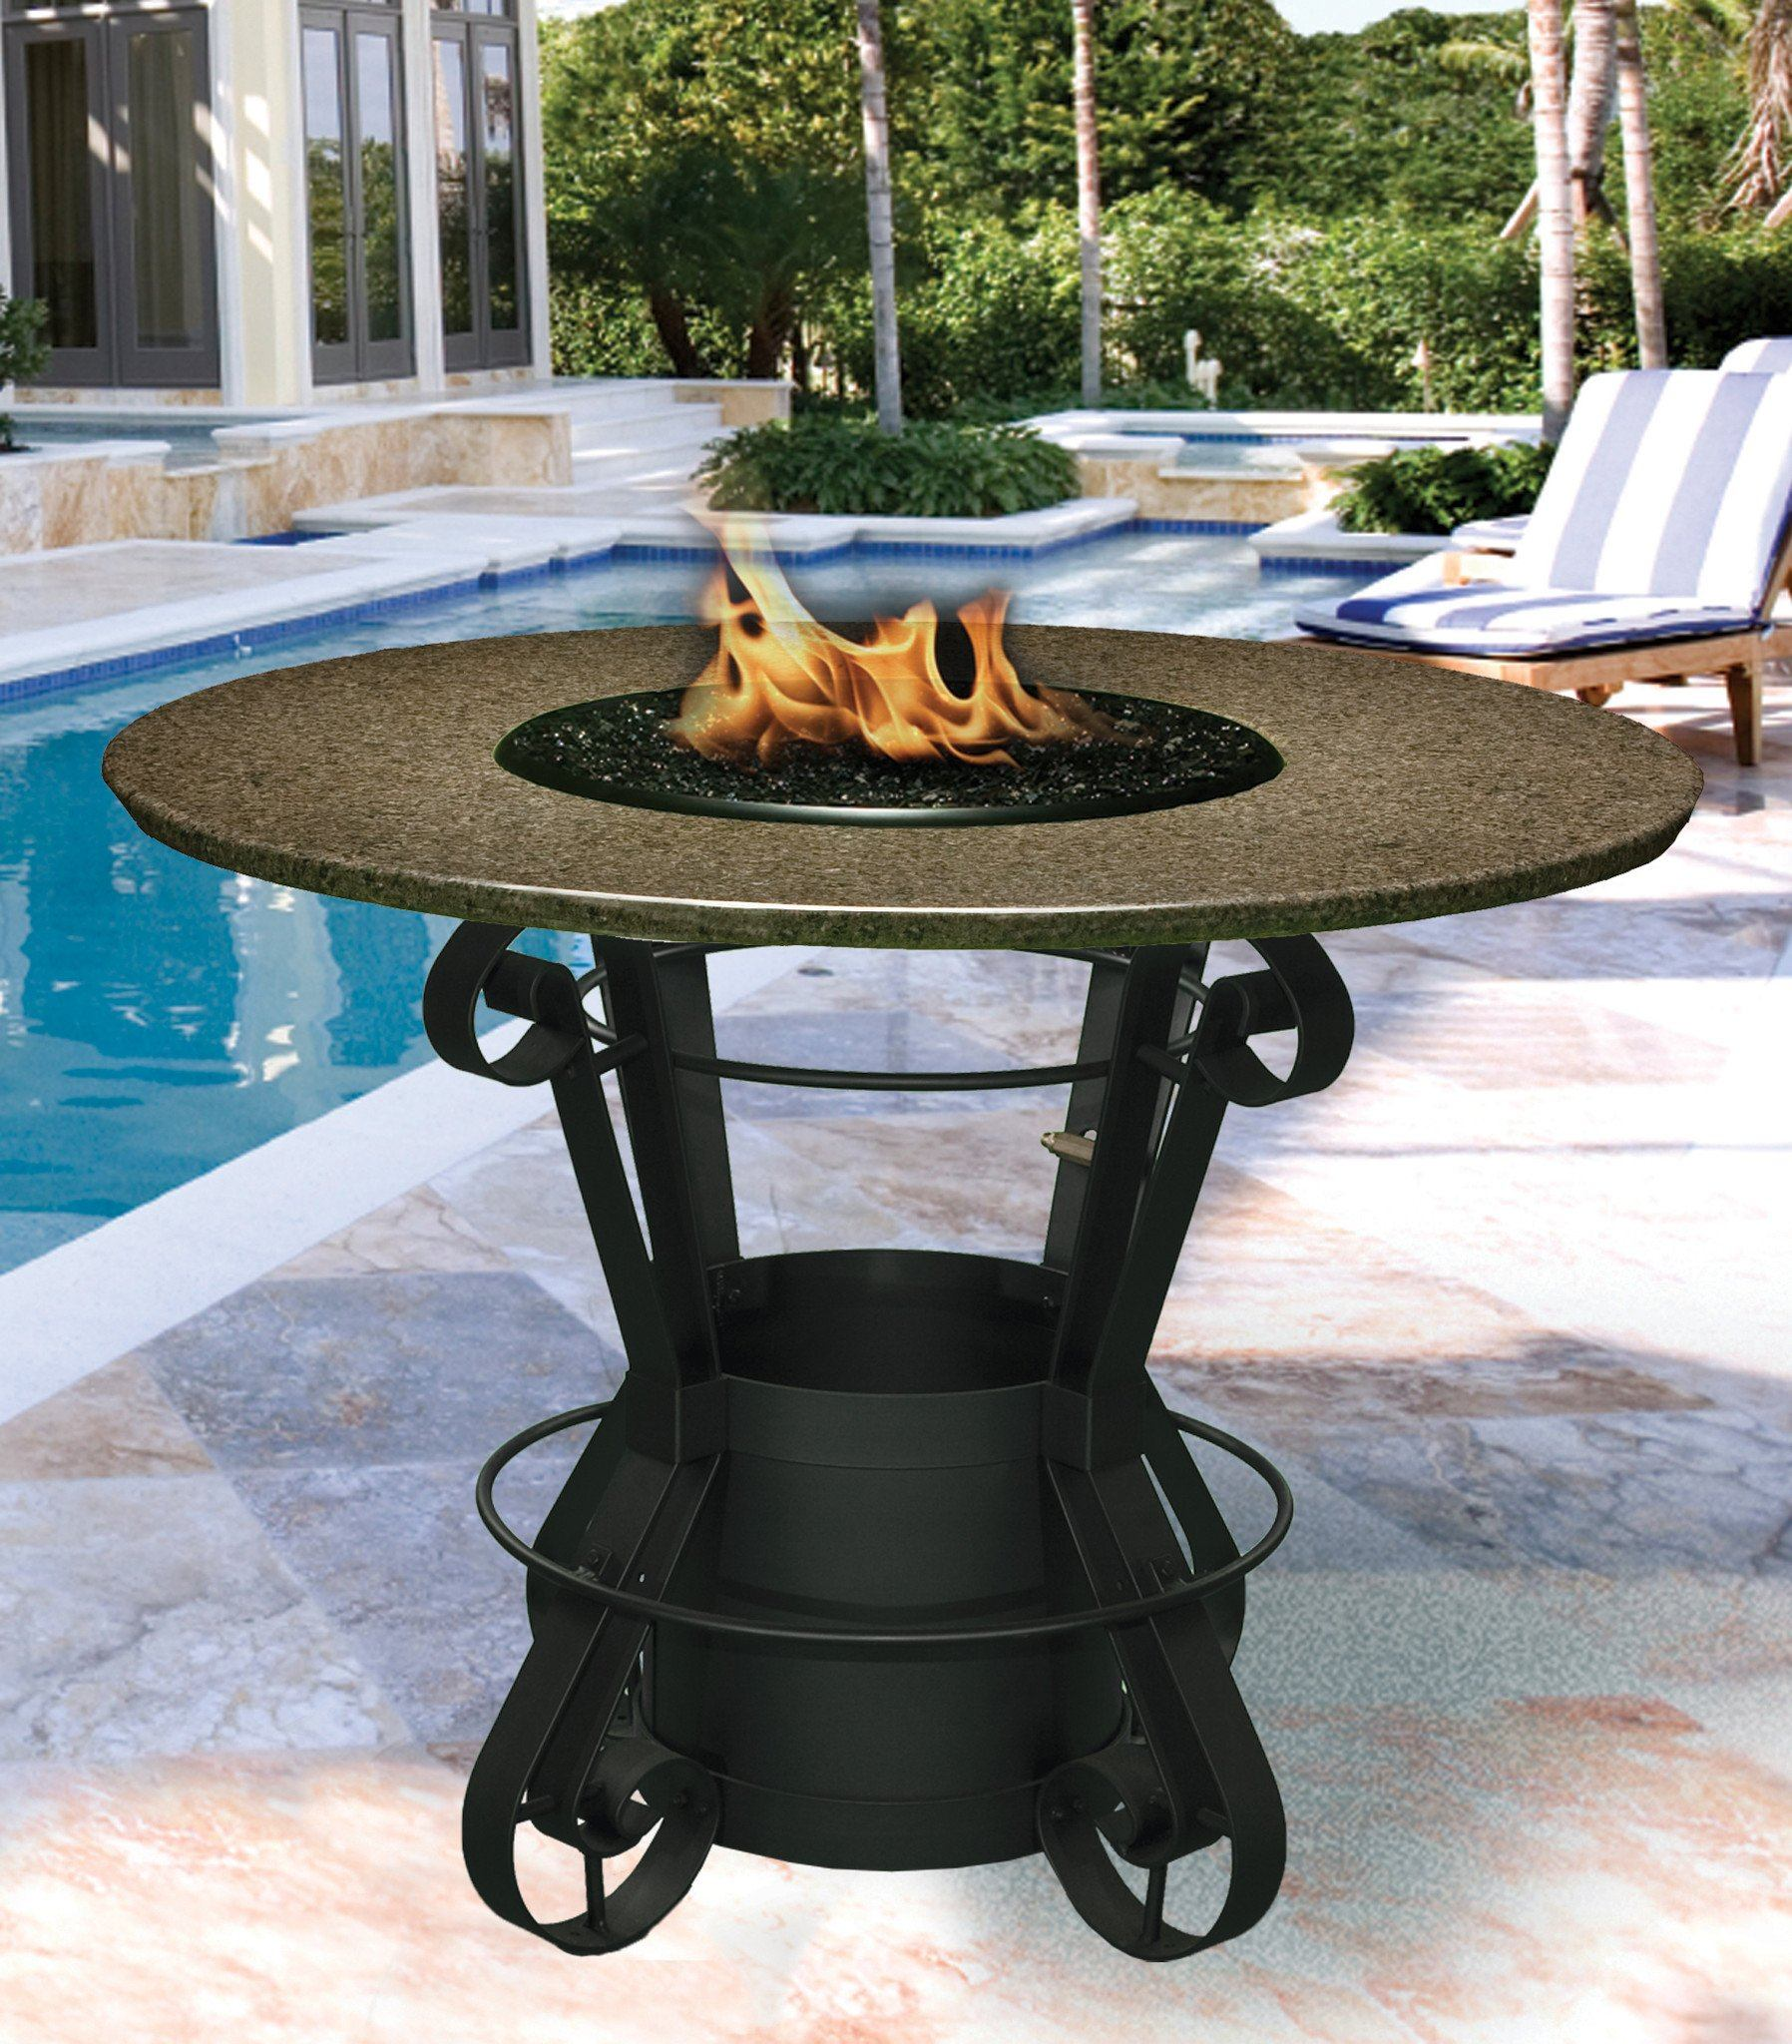 Solano Bar Height Gas/Propane Fire Pit Table - Fire Pit Plaza